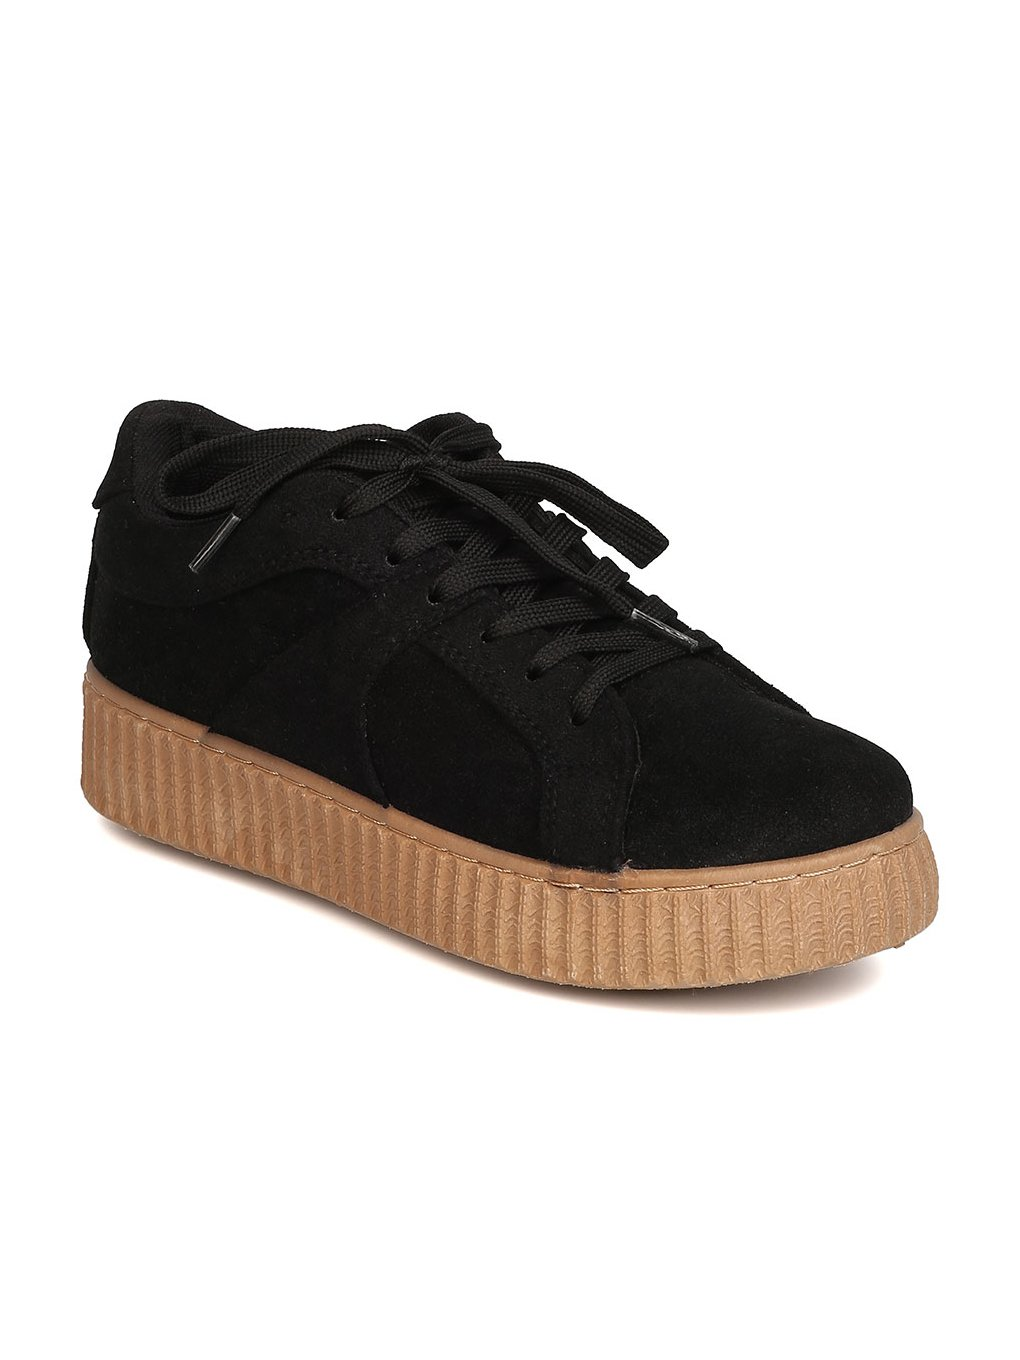 Qupid Women Faux Suede Lace up Flatform Sneaker GB87 B01N33XFA5 8.5 M US|Black